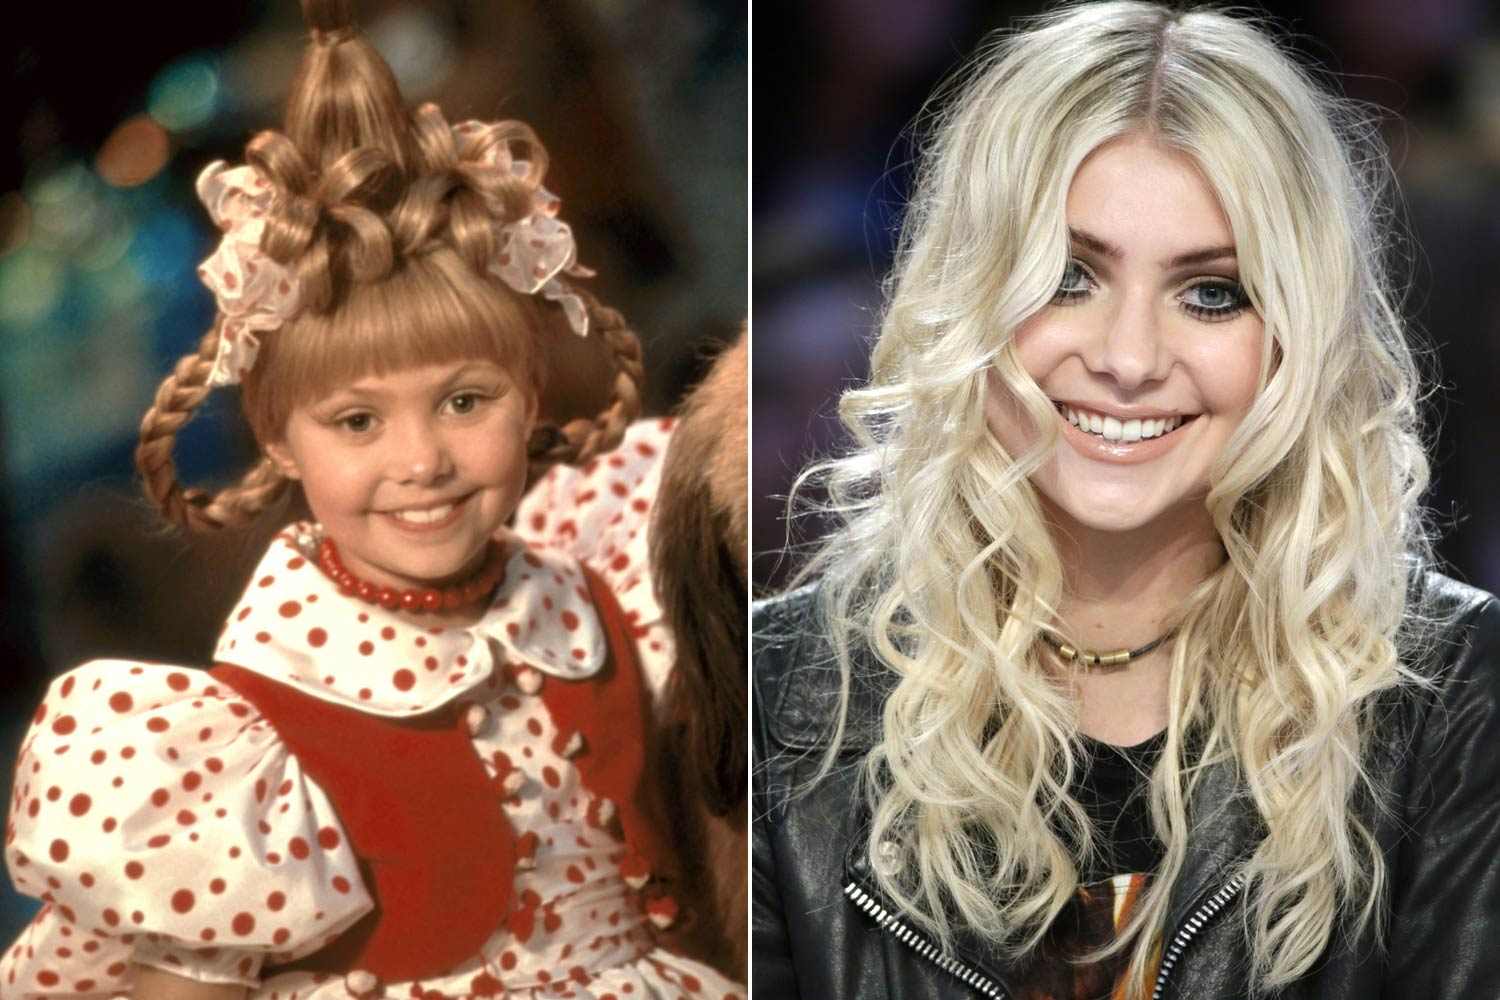 Taylor Momsen - How the Grinch Stole Christmas, 2000